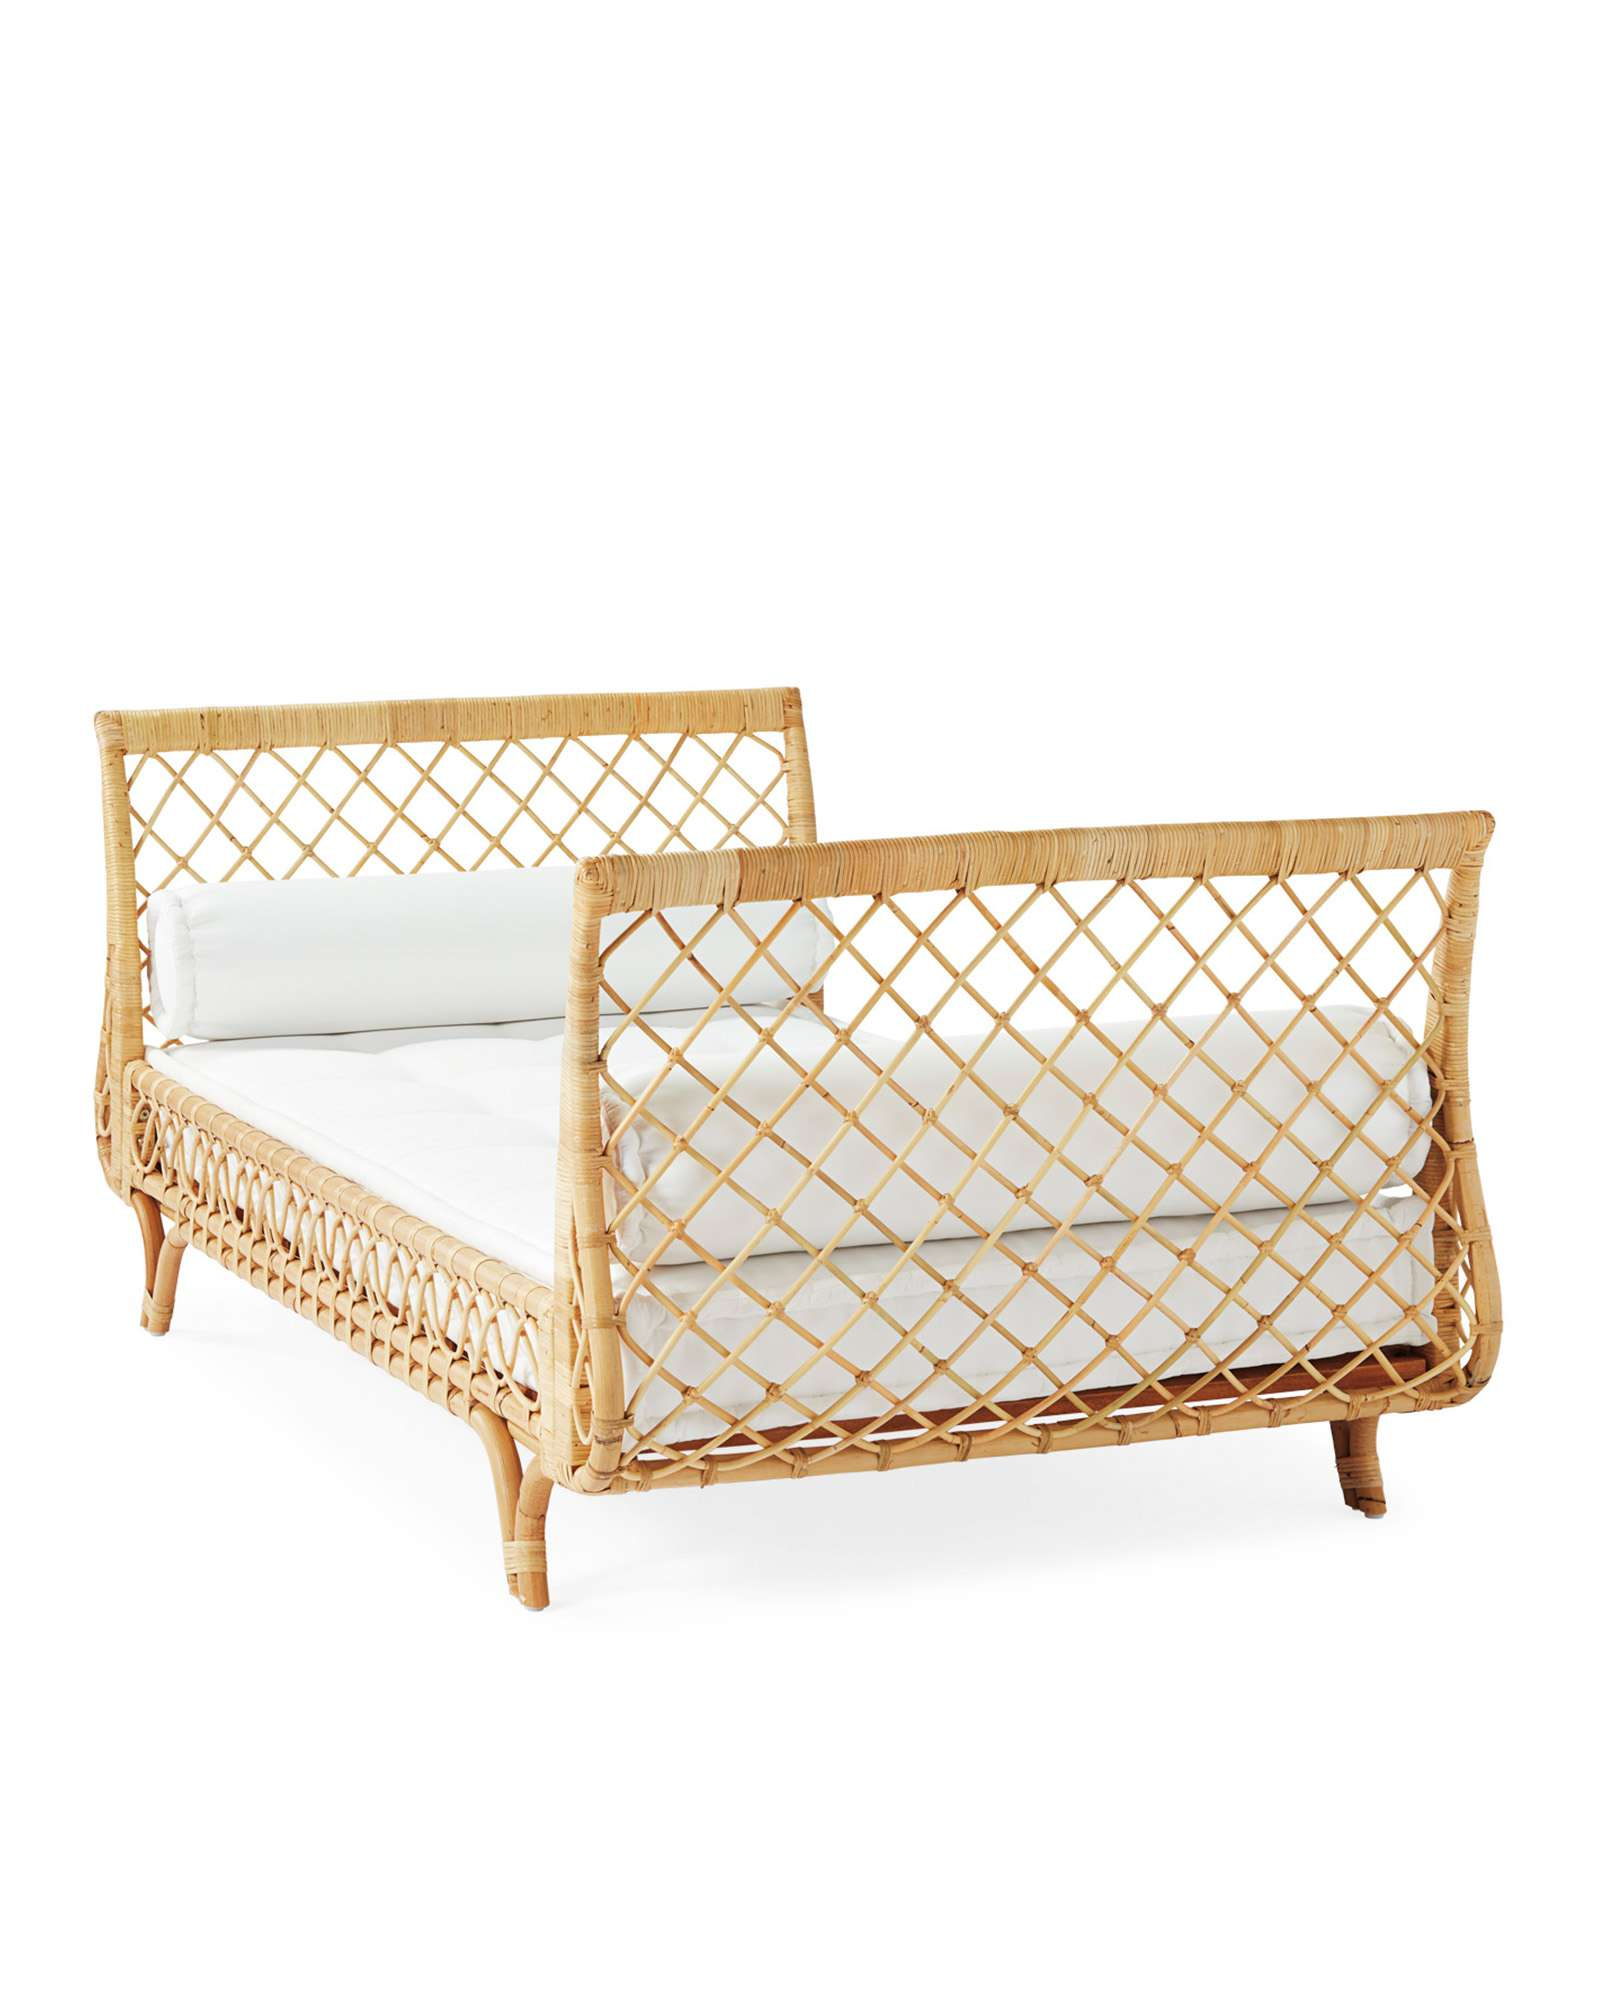 Serena and Lily Avalon Daybed